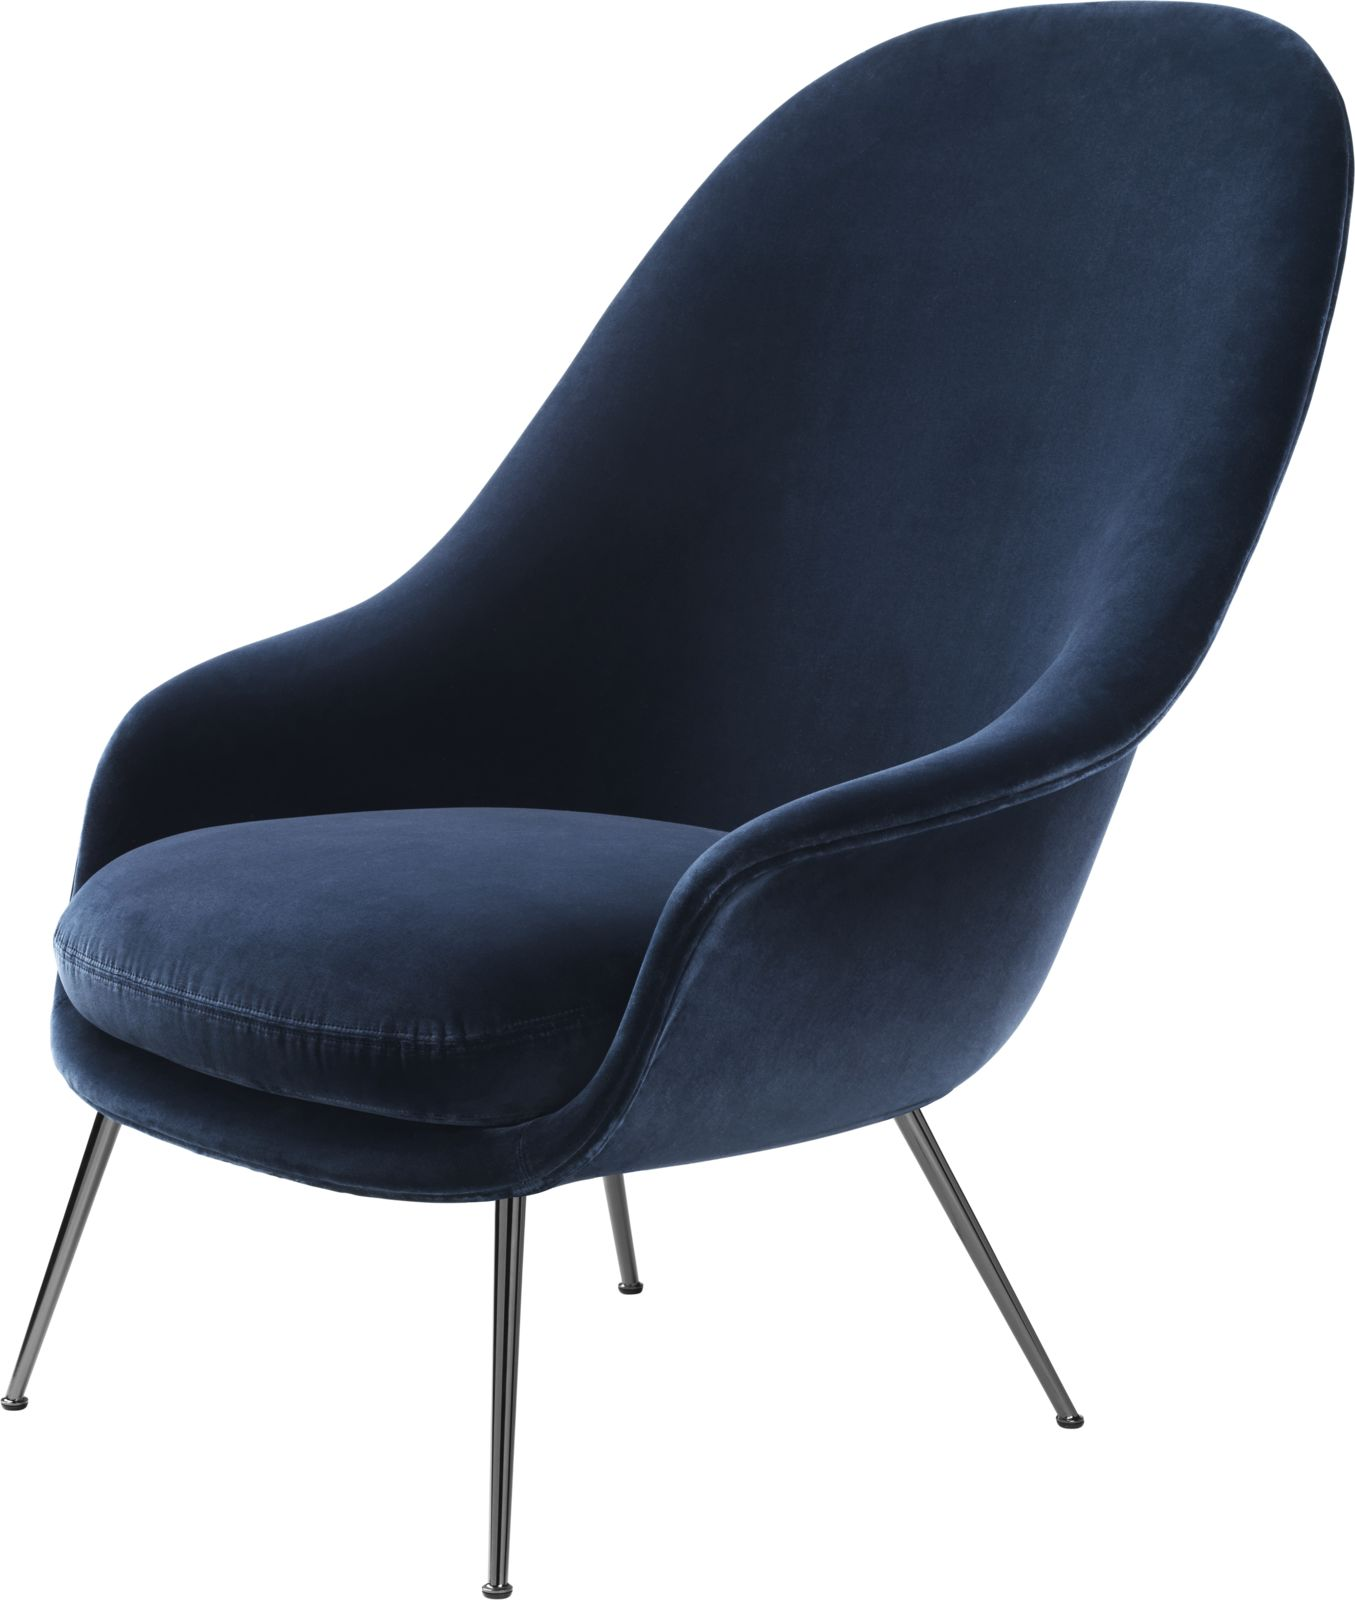 Gubi Bat Lounge Chair Design Gamfratesi